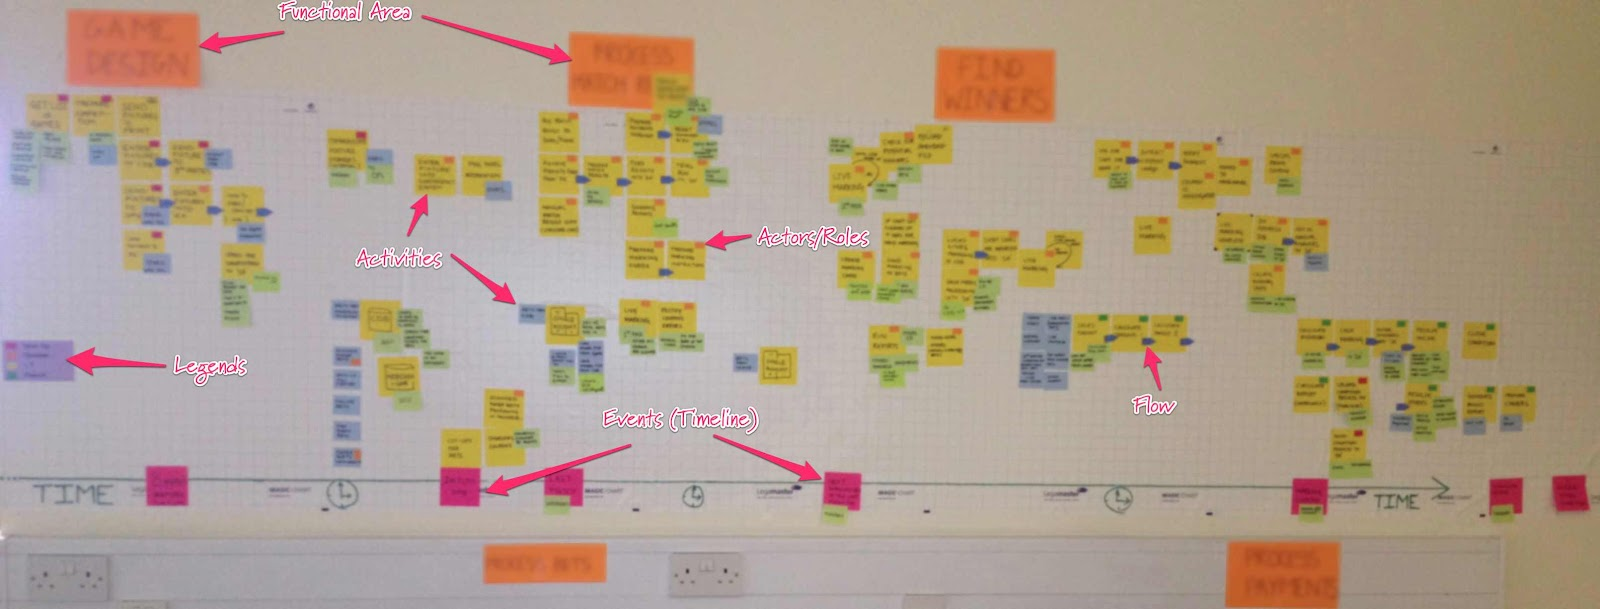 inception board process timeline map using stickies sunit blog